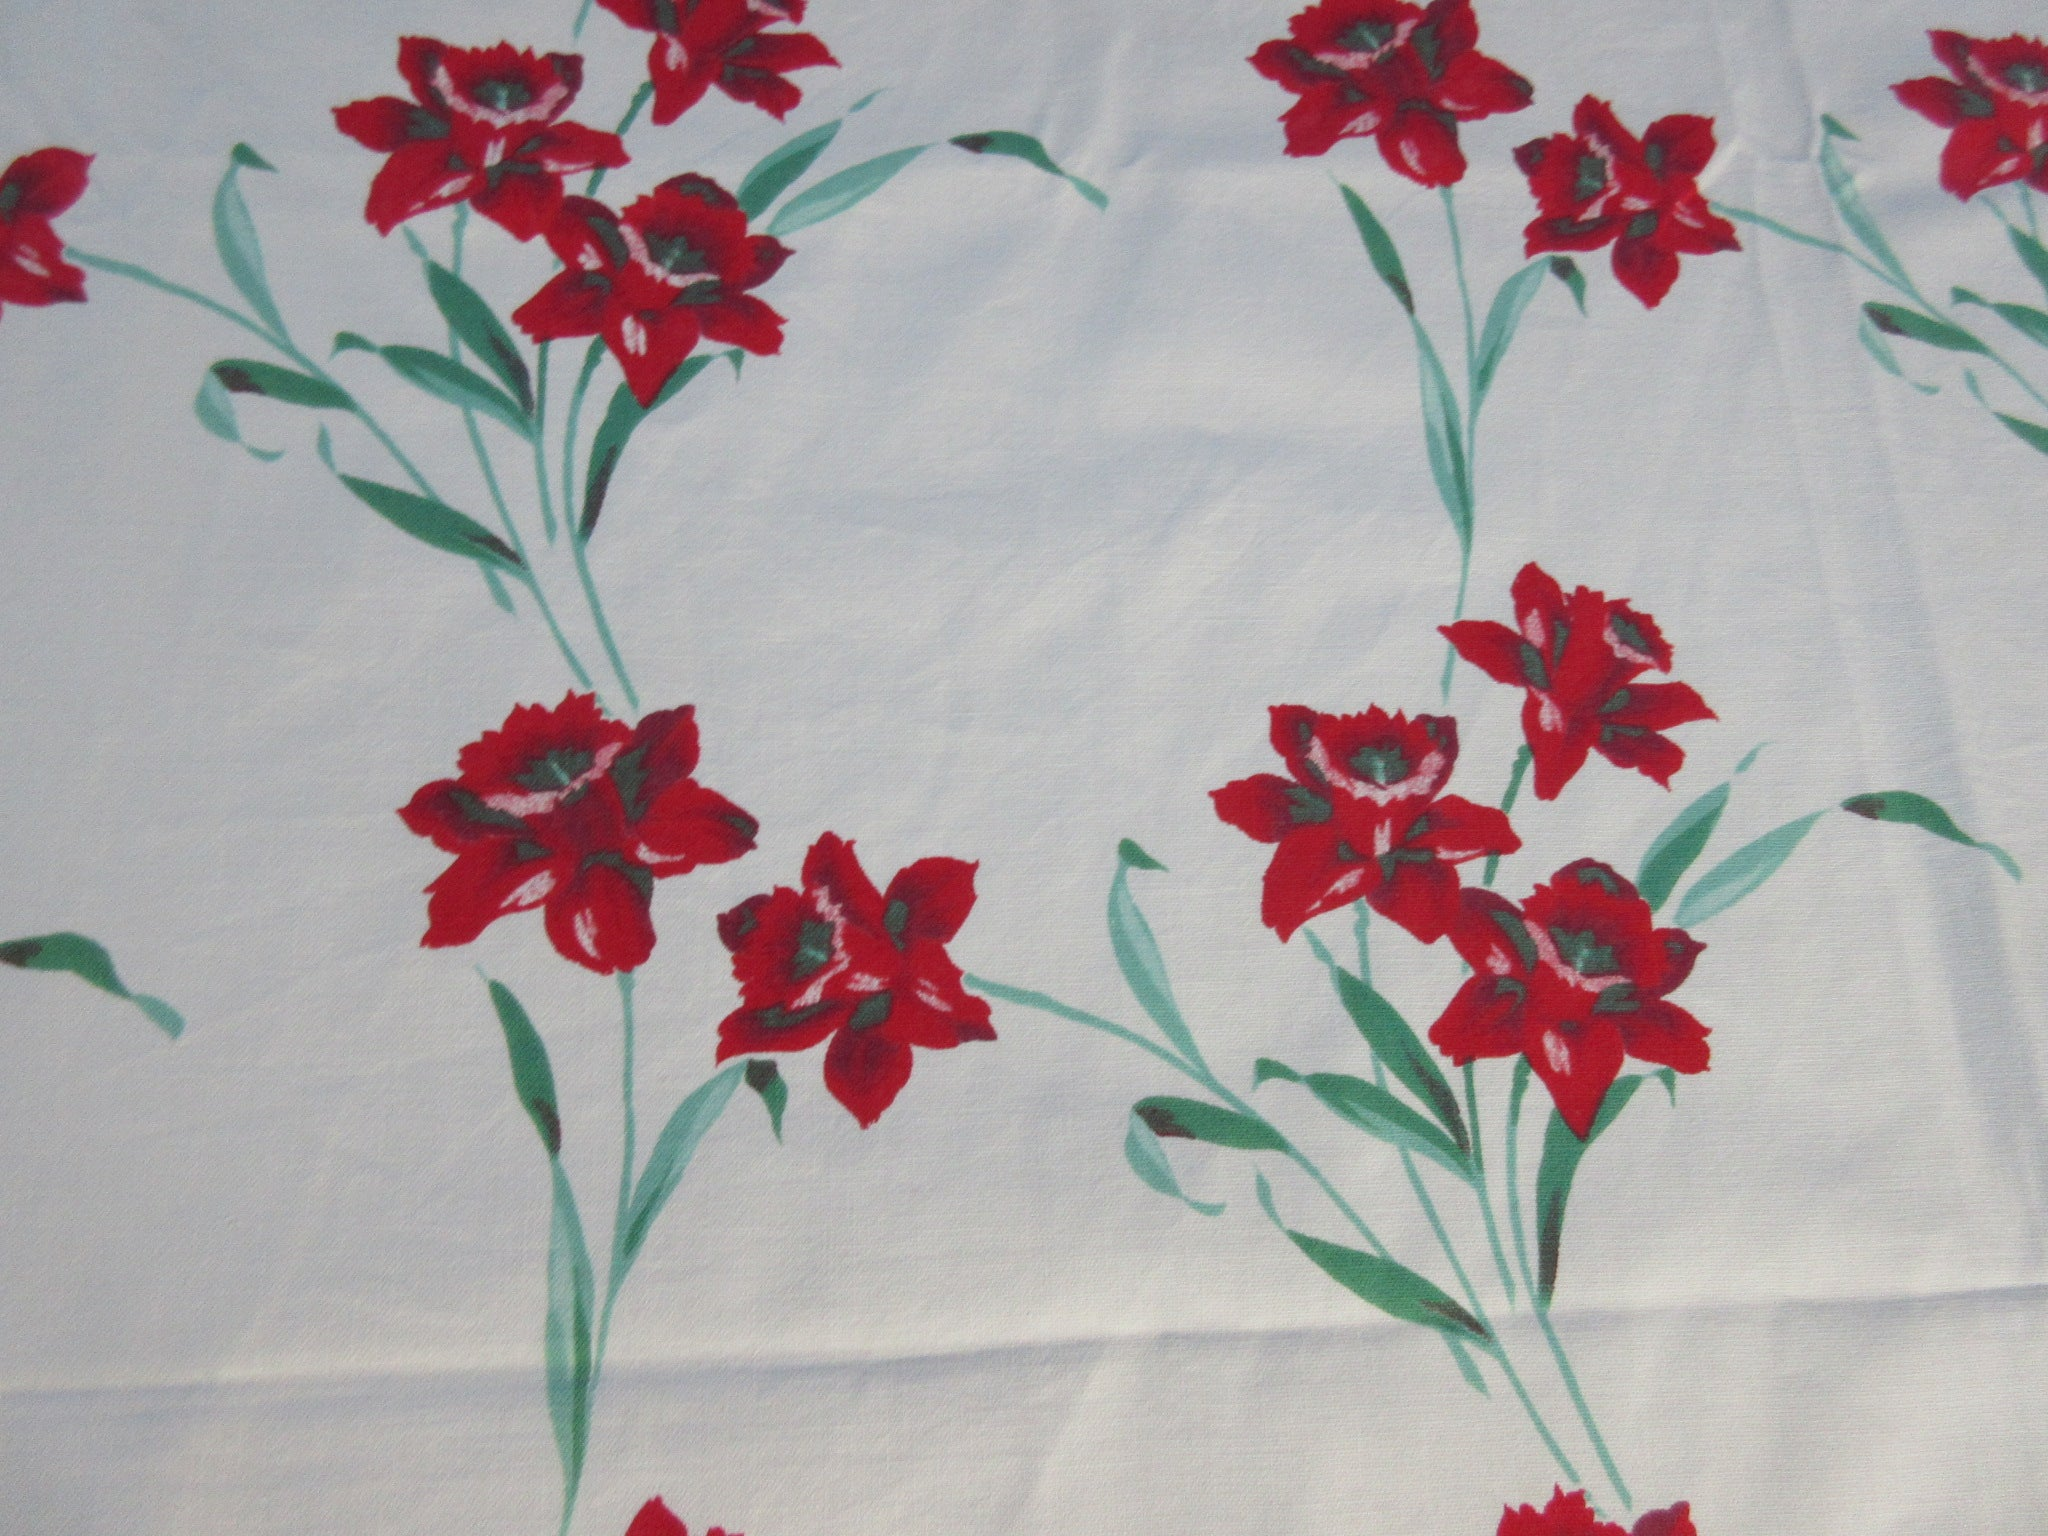 Red Green Daffodil Stripes Floral Vintage Printed Tablecloth (53 X 46)